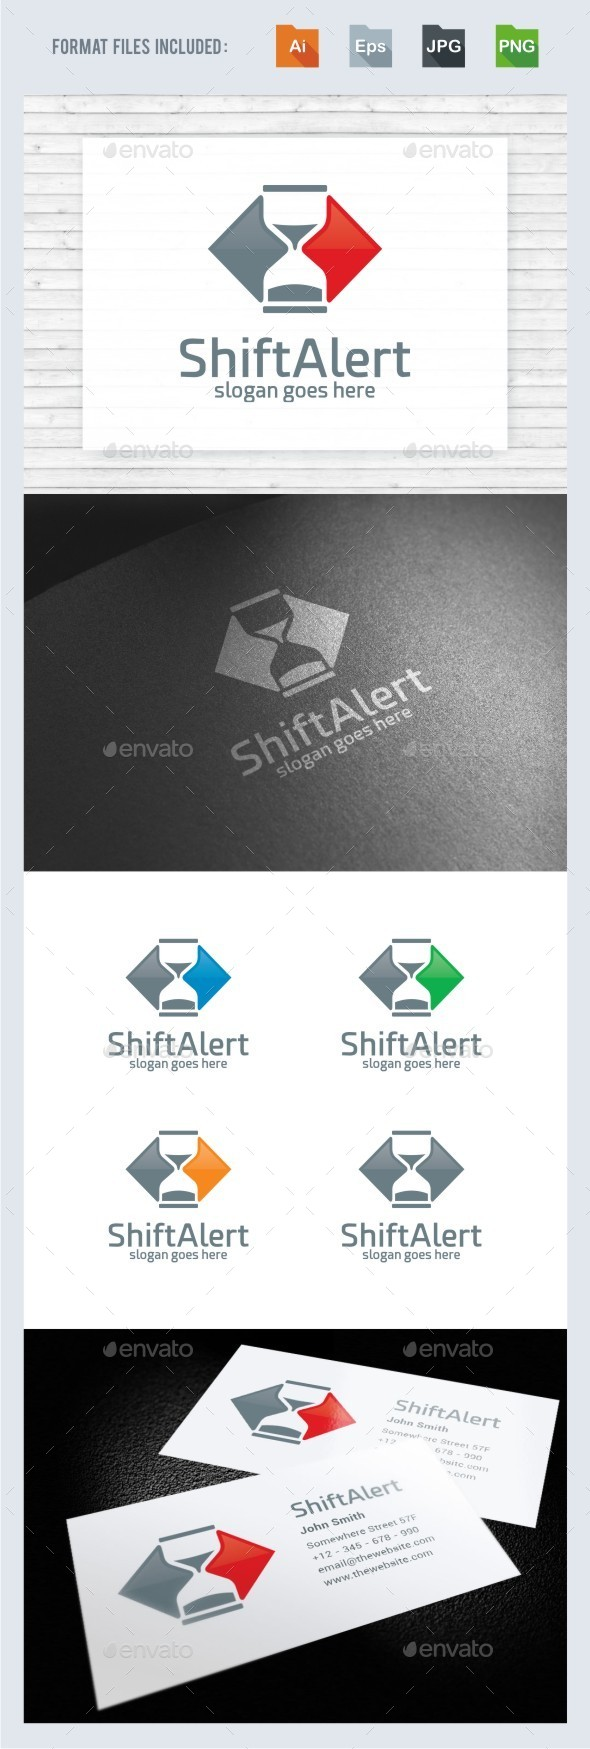 Shift Alert Sand Watch Logo Template